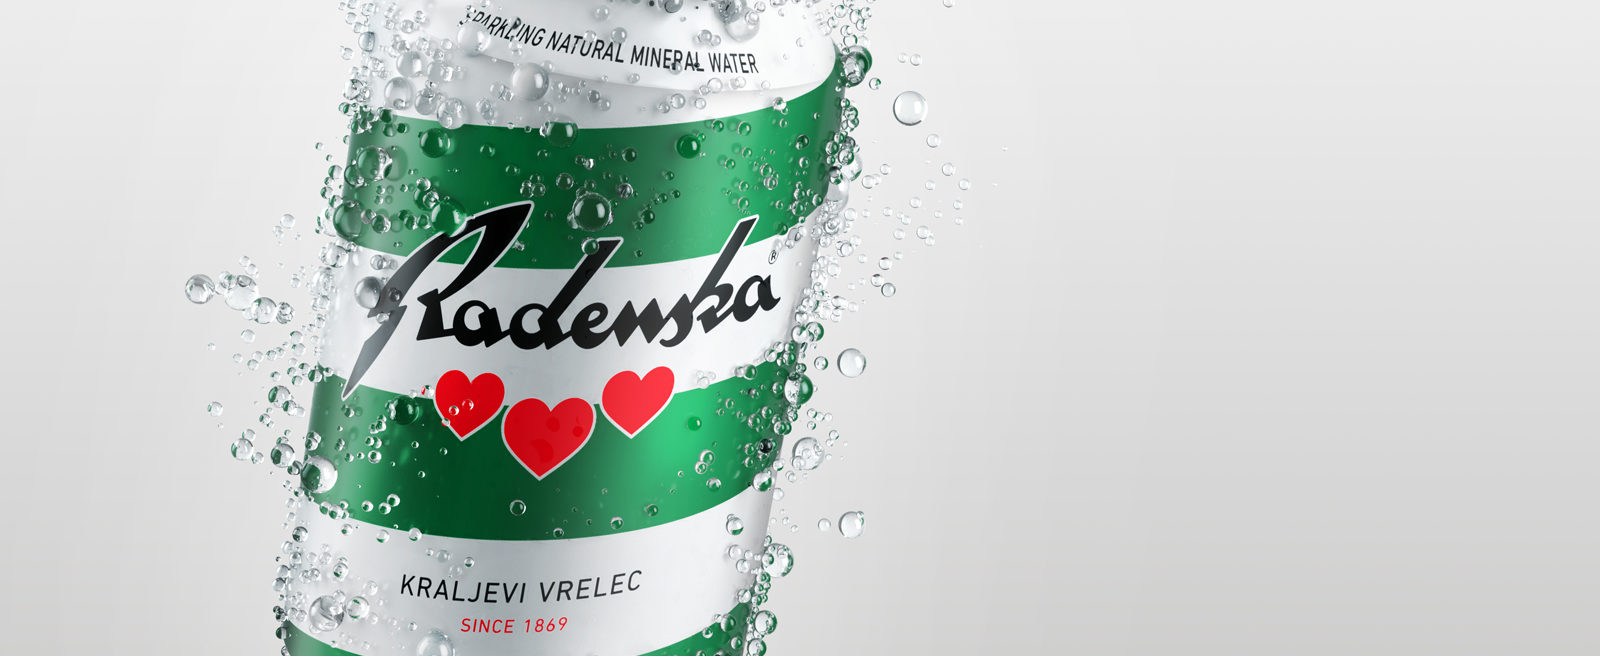 Sparkling mineral water Radenska in a can